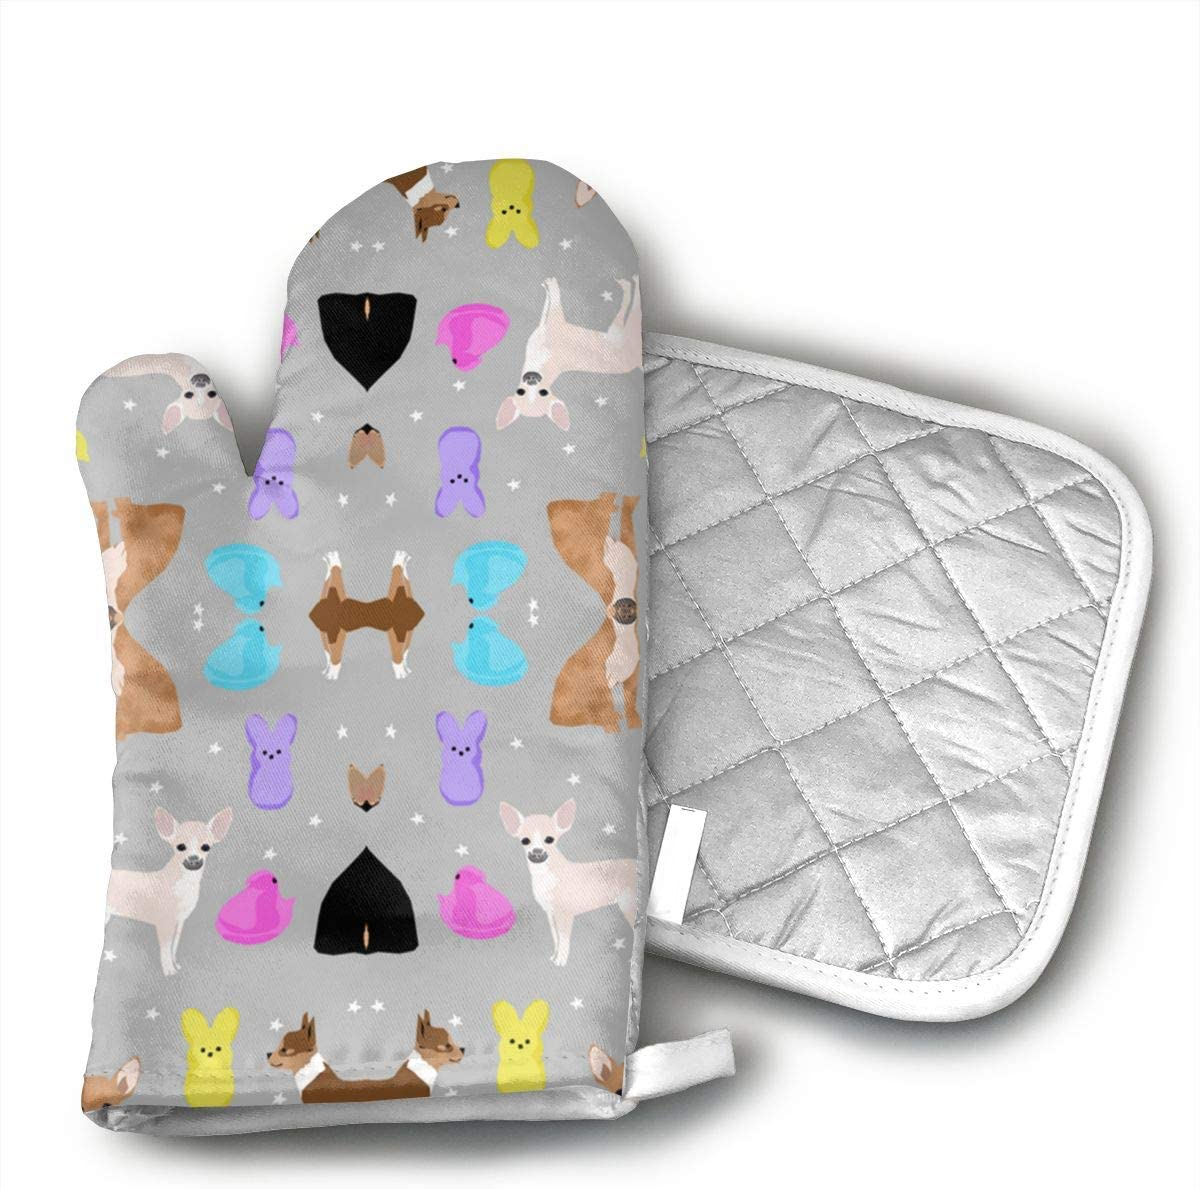 GDSJHVJNK Chihuahua Easter Spring Marshmallow Treats Dog BRE Hand Drawn Oven Glove Heat Resistant Cooking Glove, Include A Insulated Glove and A Insulation Pad.¡¤